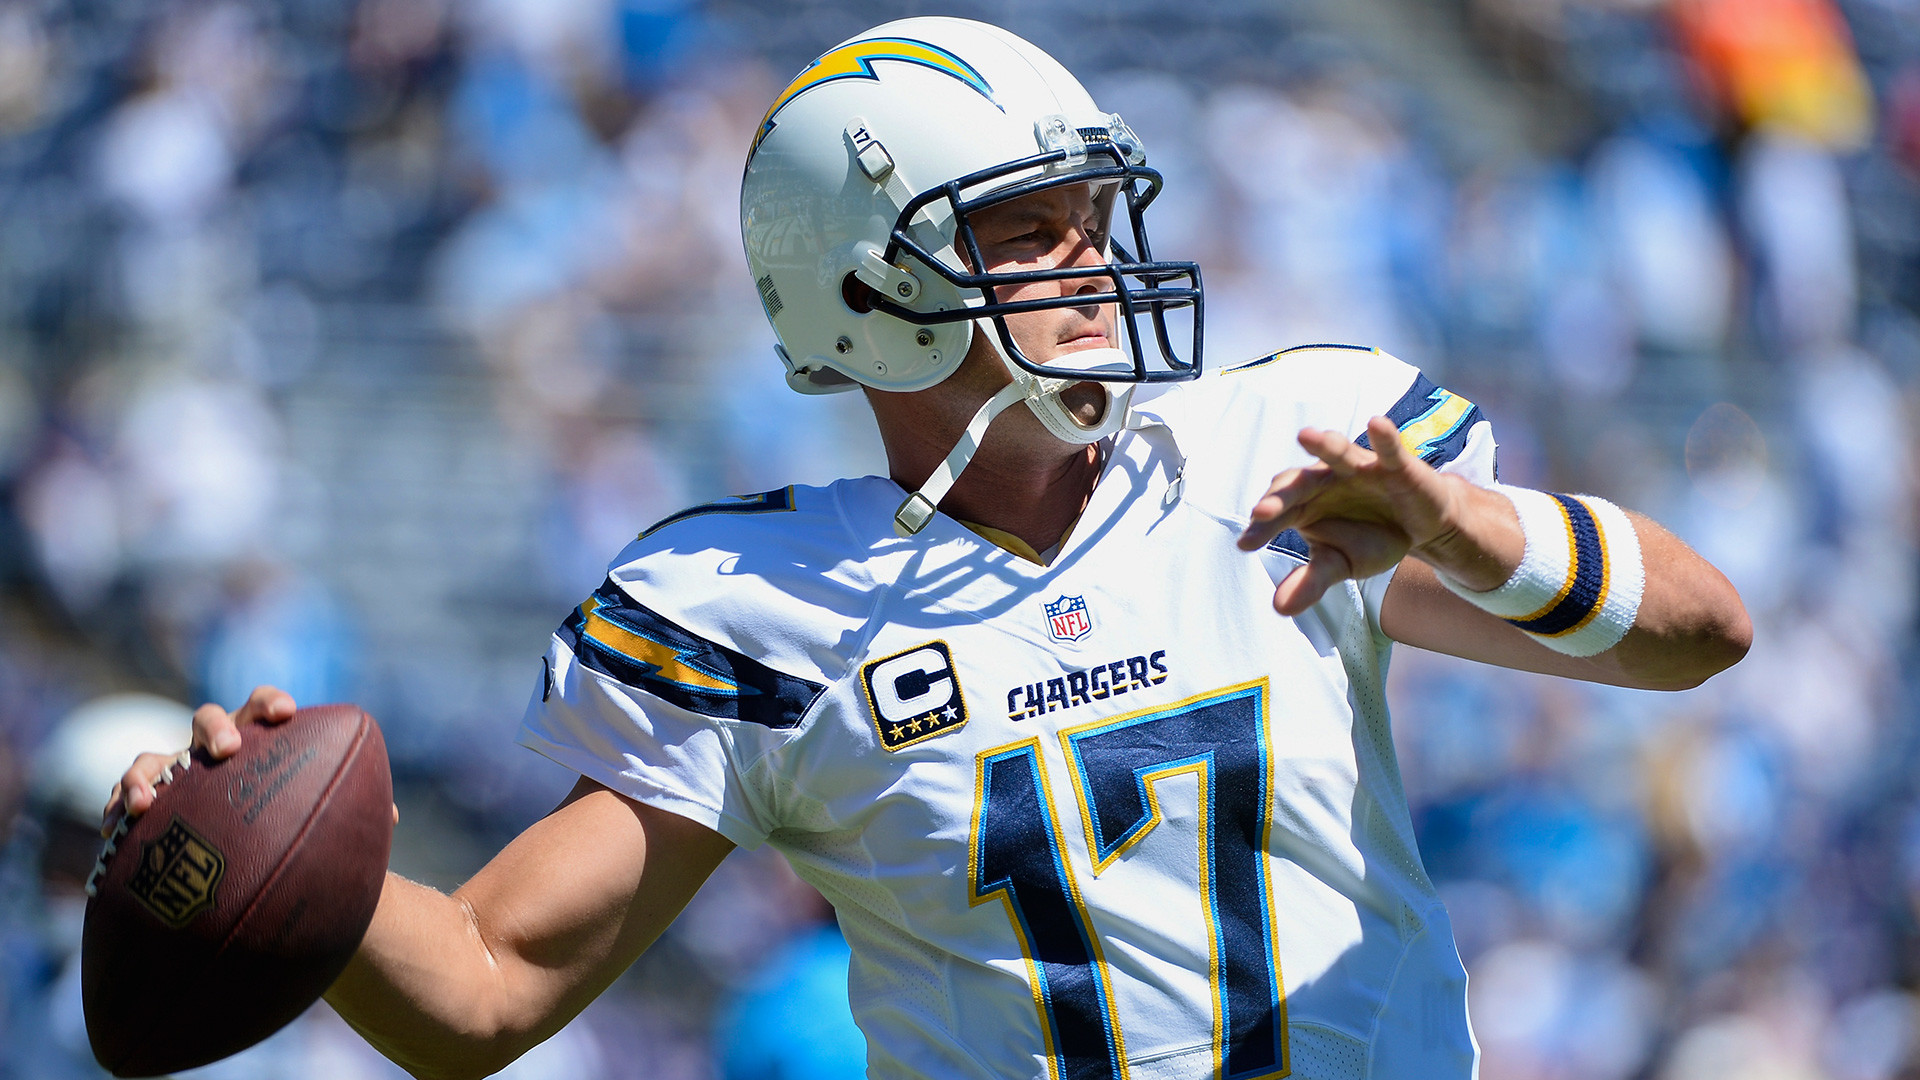 Philip Rivers Pos QB Career 207 G 3 TD 7xProBowl Chargers 20042018 1x Yds Leader born AL 1981